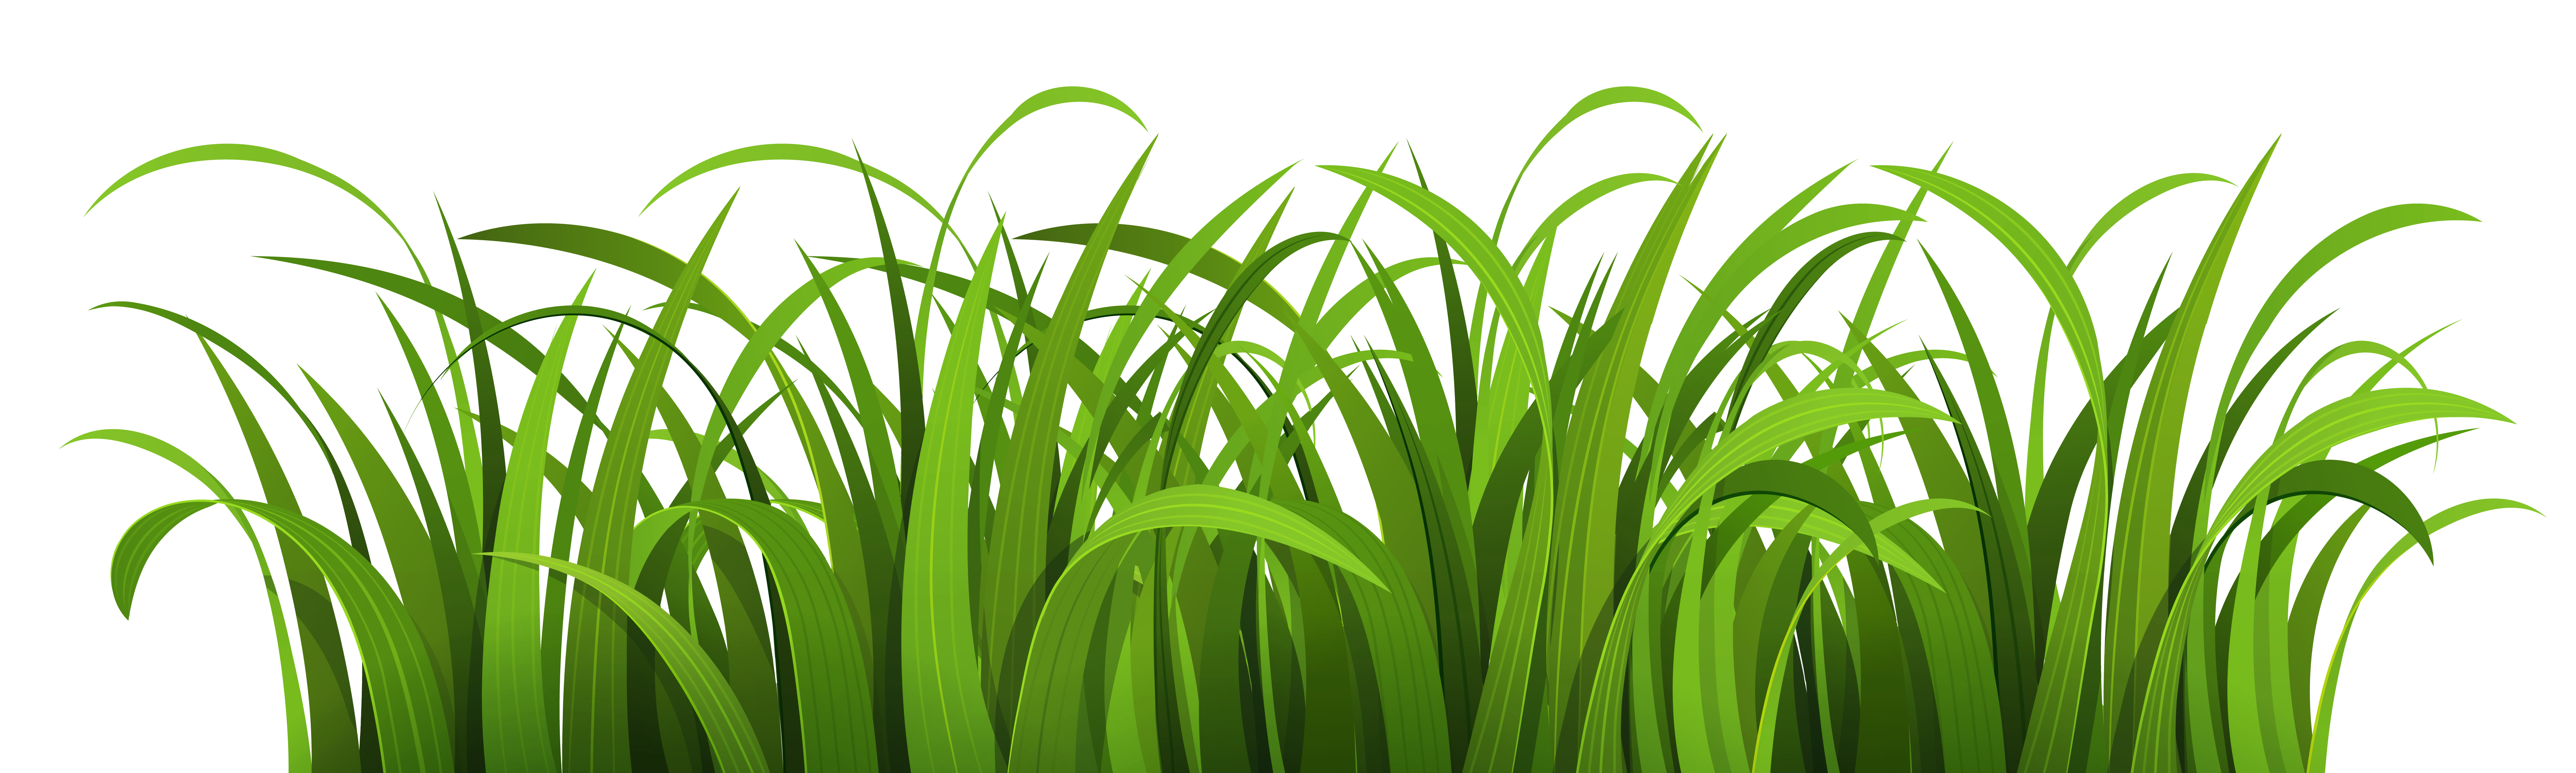 Png nature background. Clipart image purepng free